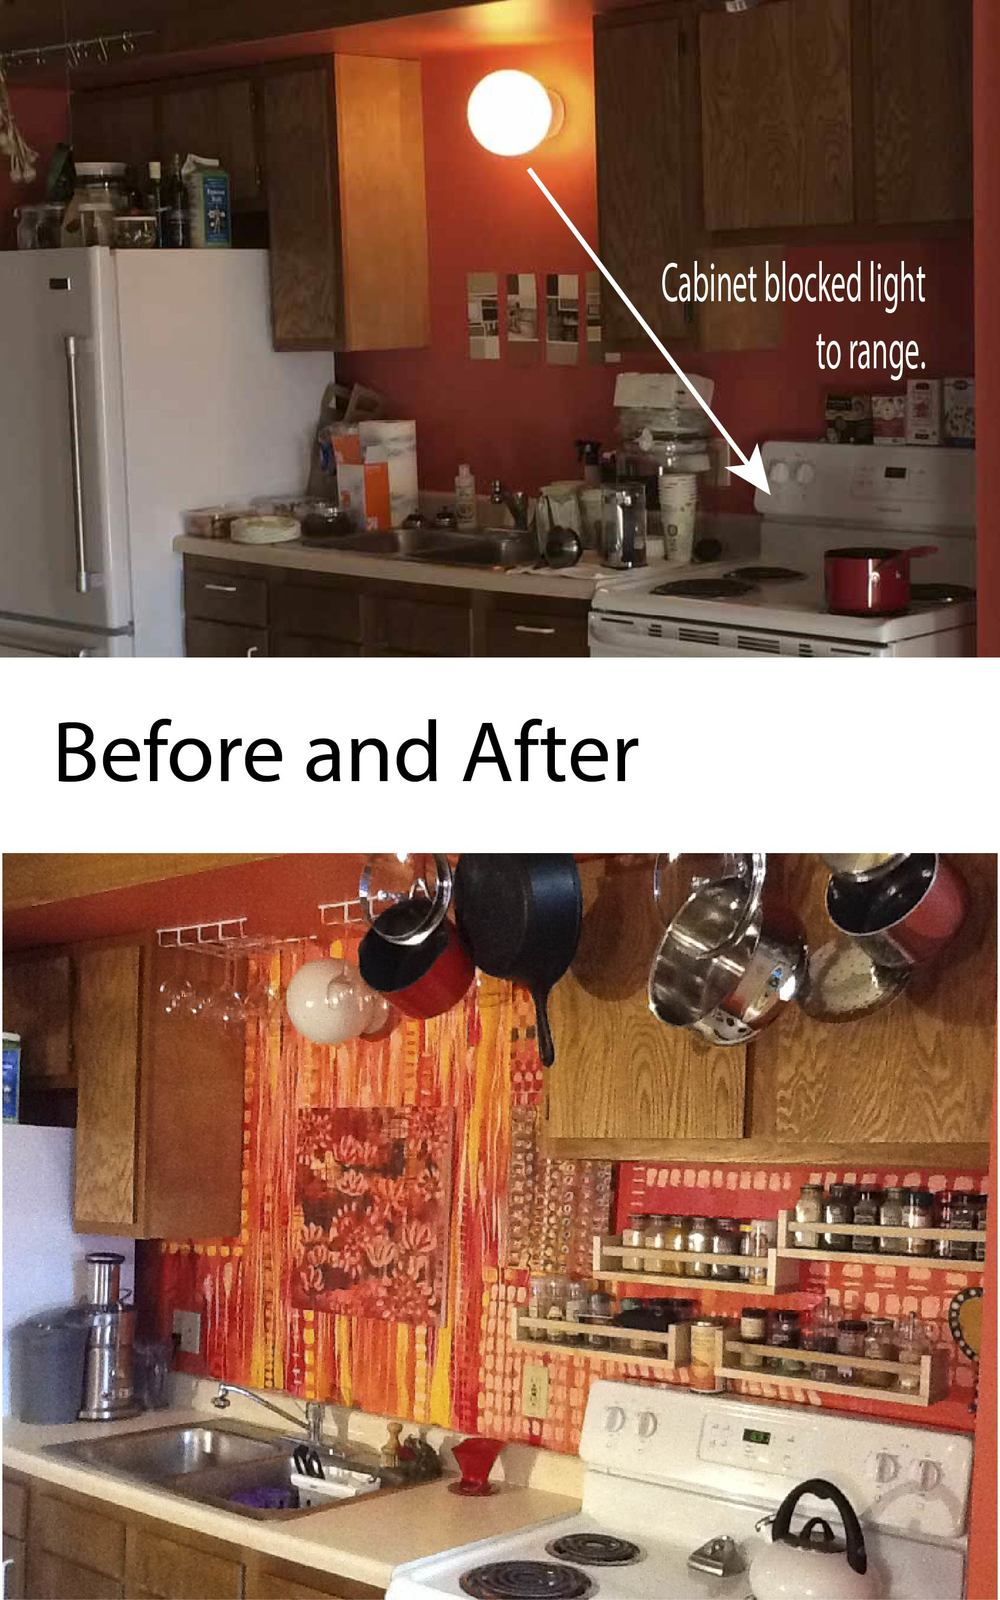 Here is a little before and after of my kitchen workspace. After removing the light blocking cabinet I used acrylic artist paint to cover the big white rectangle left behind. I couldn't stop there . . . oh no . . . now my kitchen is lighter and much brighter!